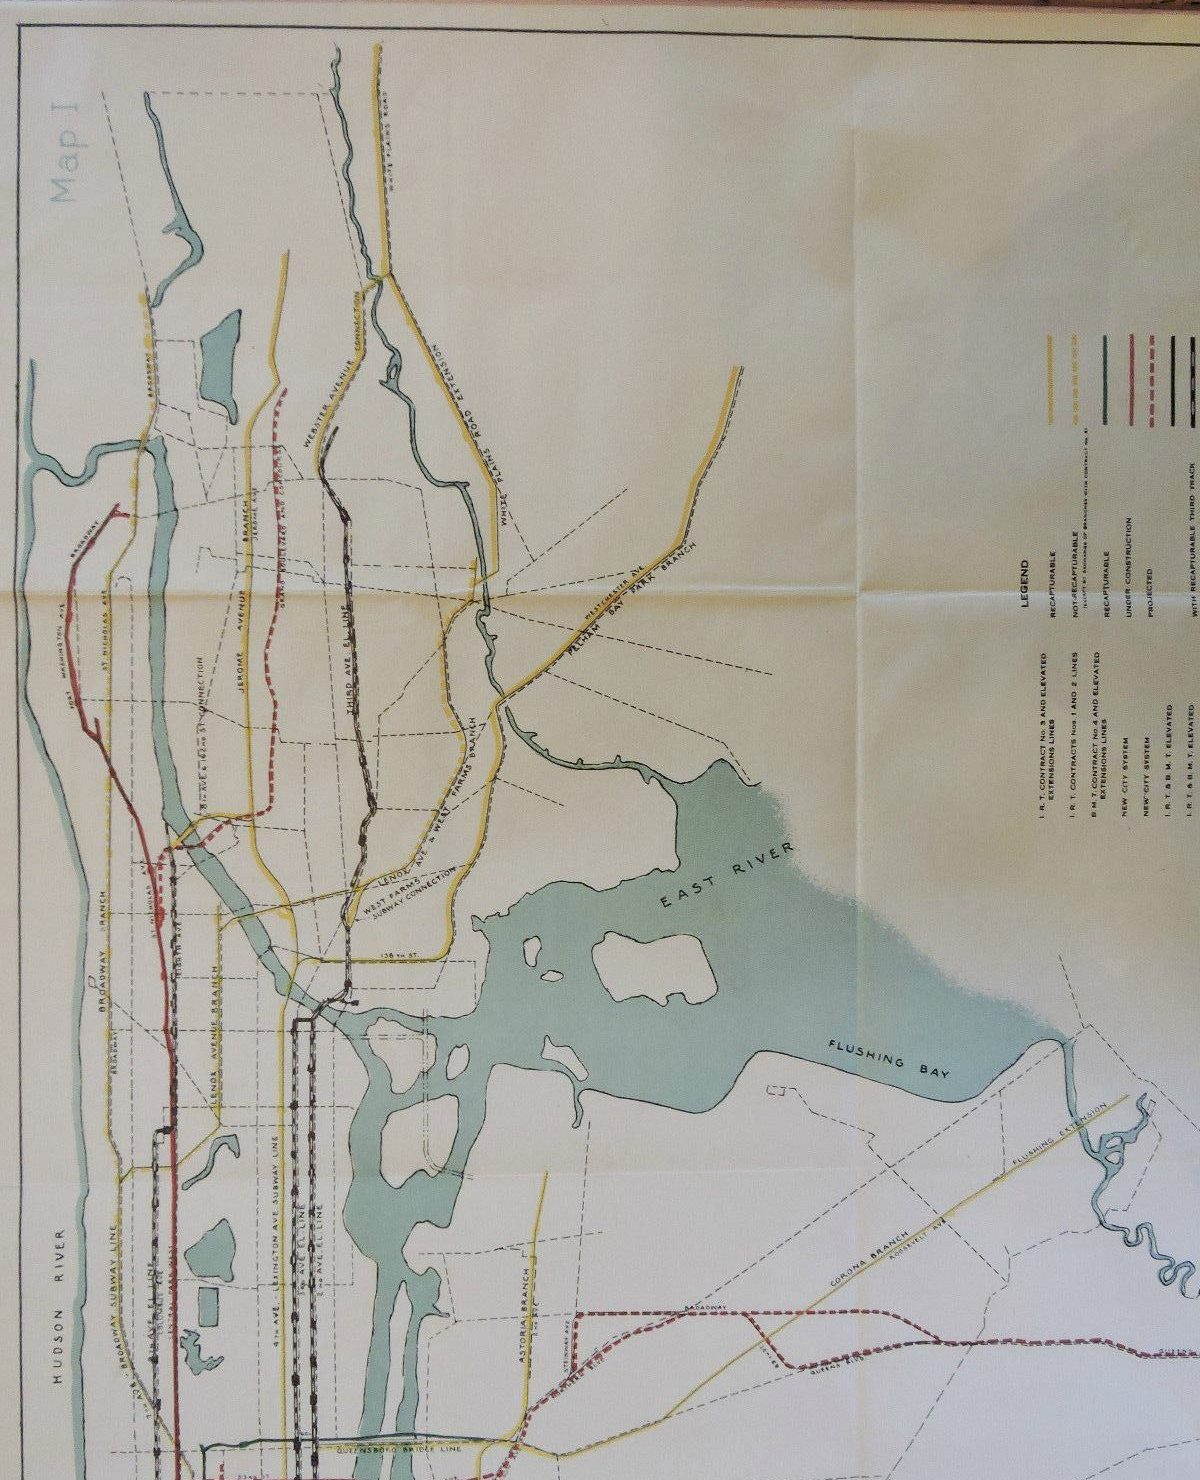 This 1927 city subway map shows early transit plans   6sqft 1927 subway map  Independent Subway System  ISS  IND  transit maps  nyc